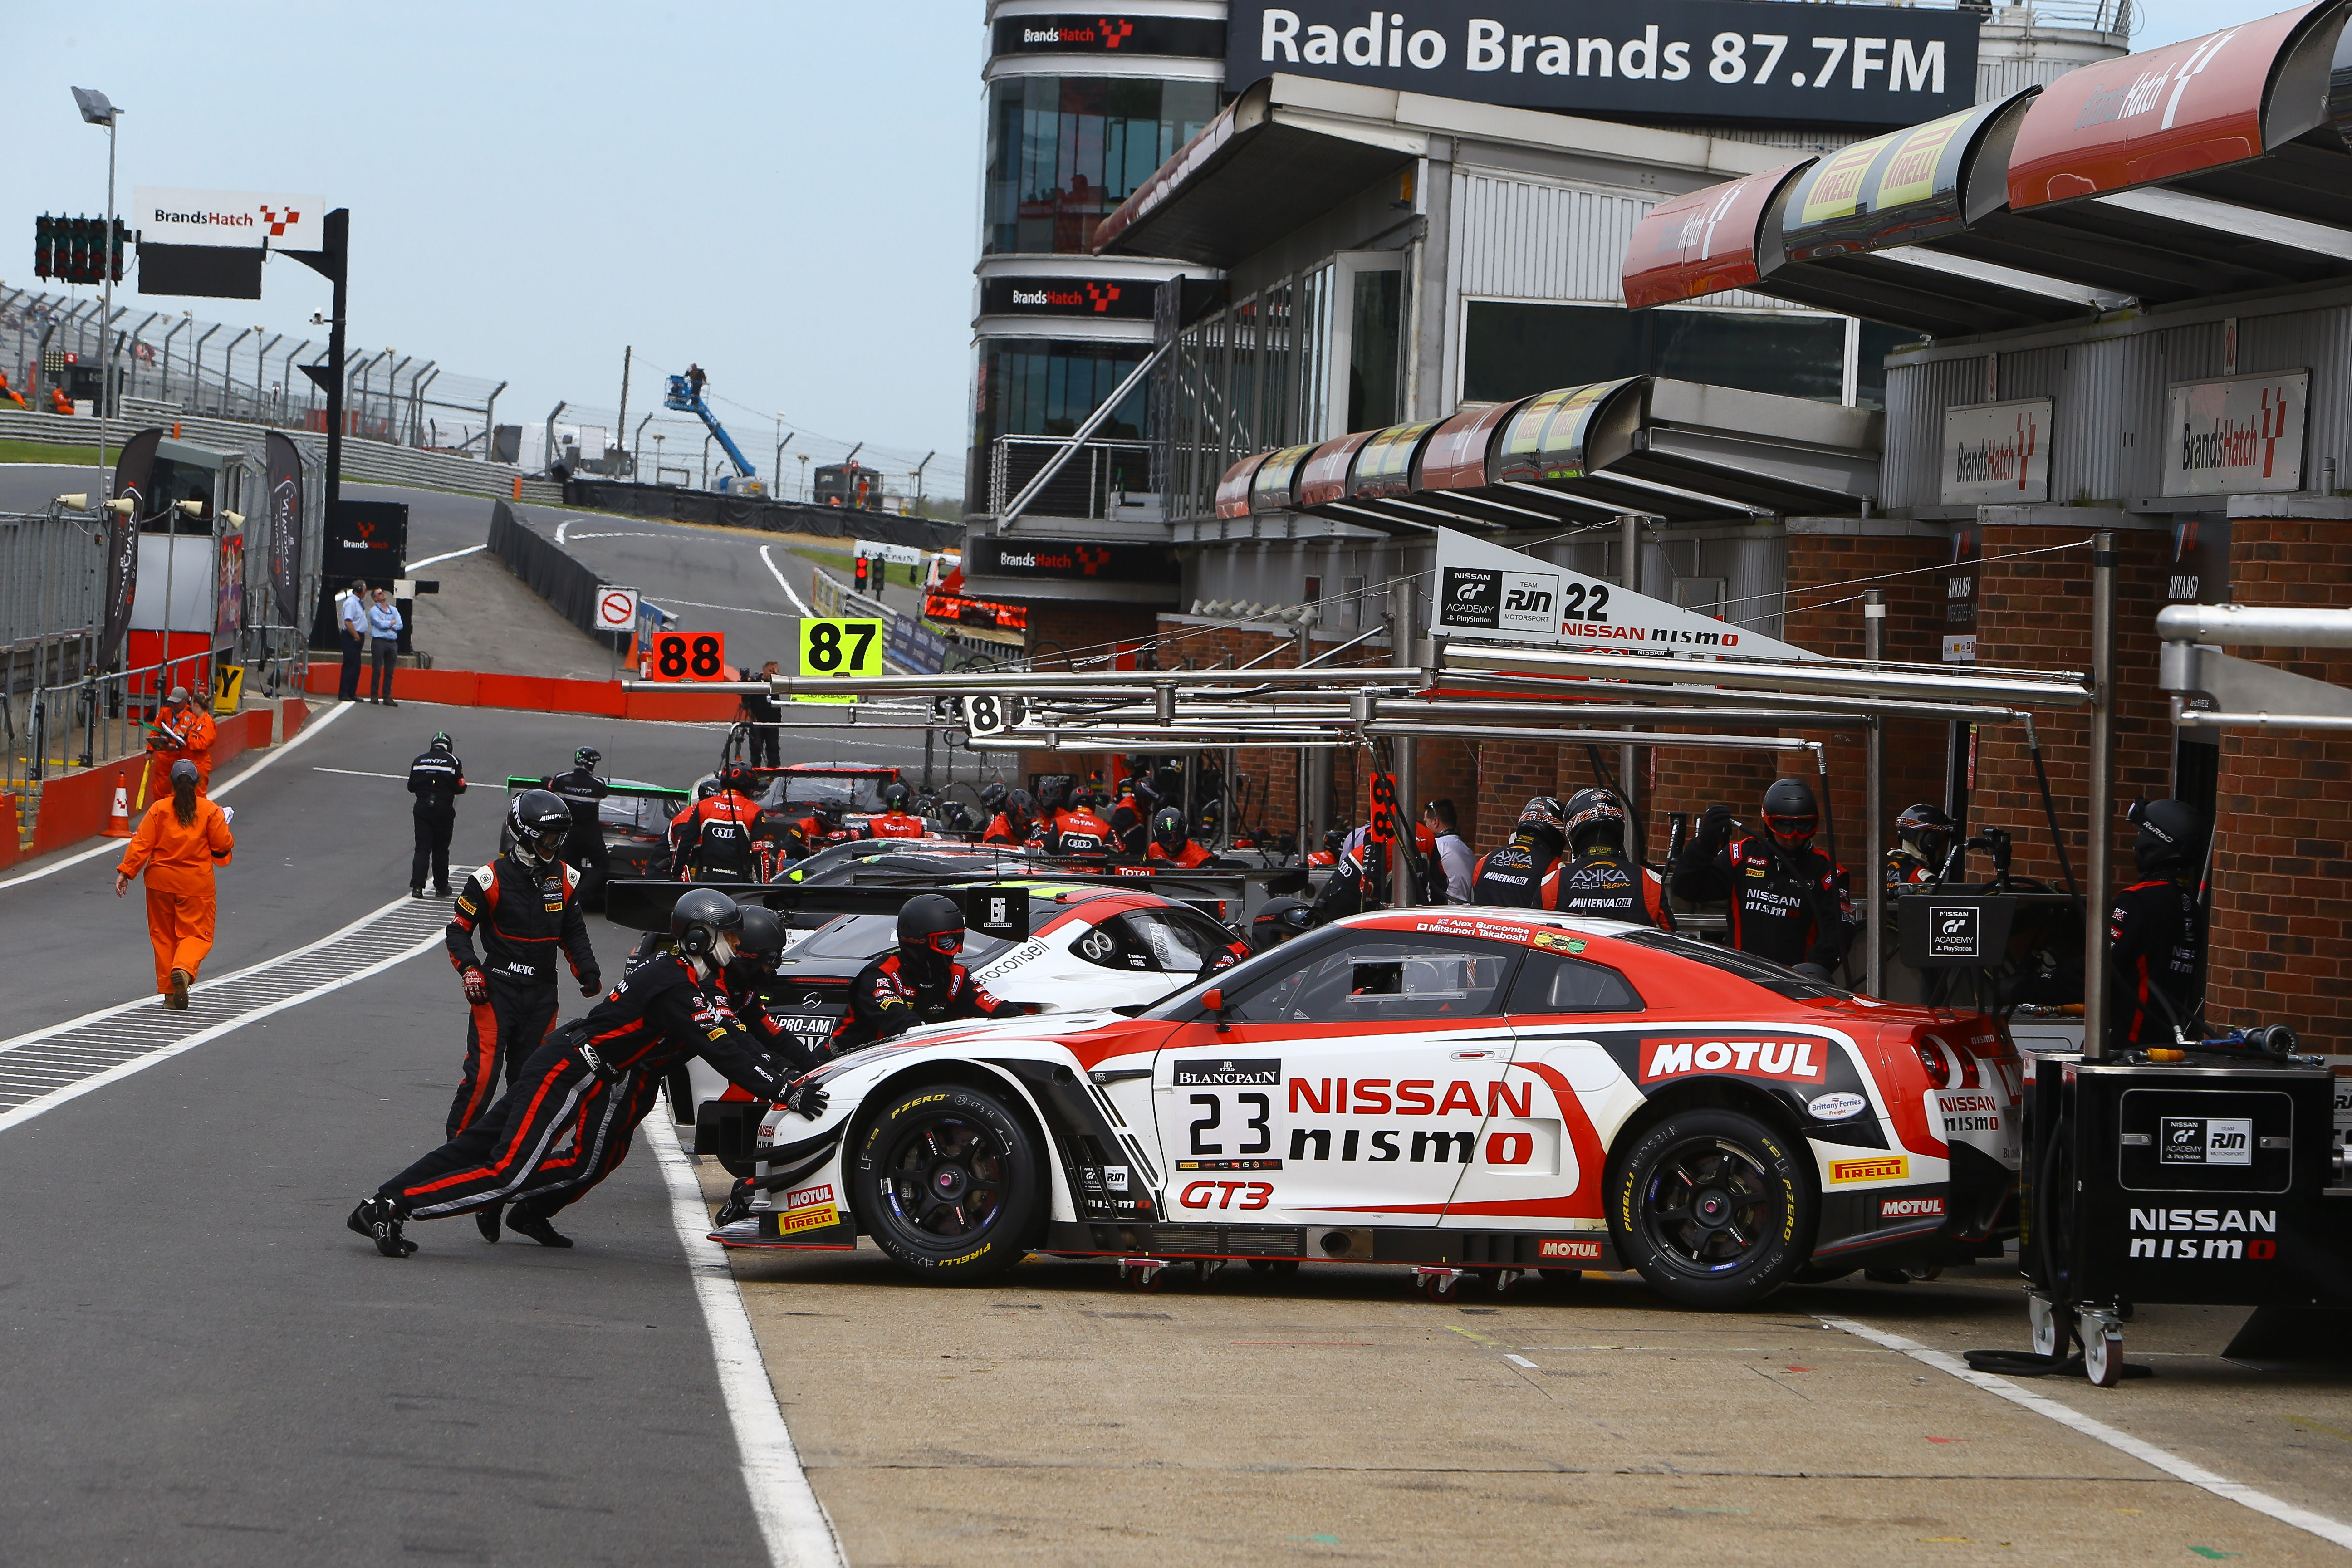 MSVR News - Blancpain GT Series returns to Brands Hatch